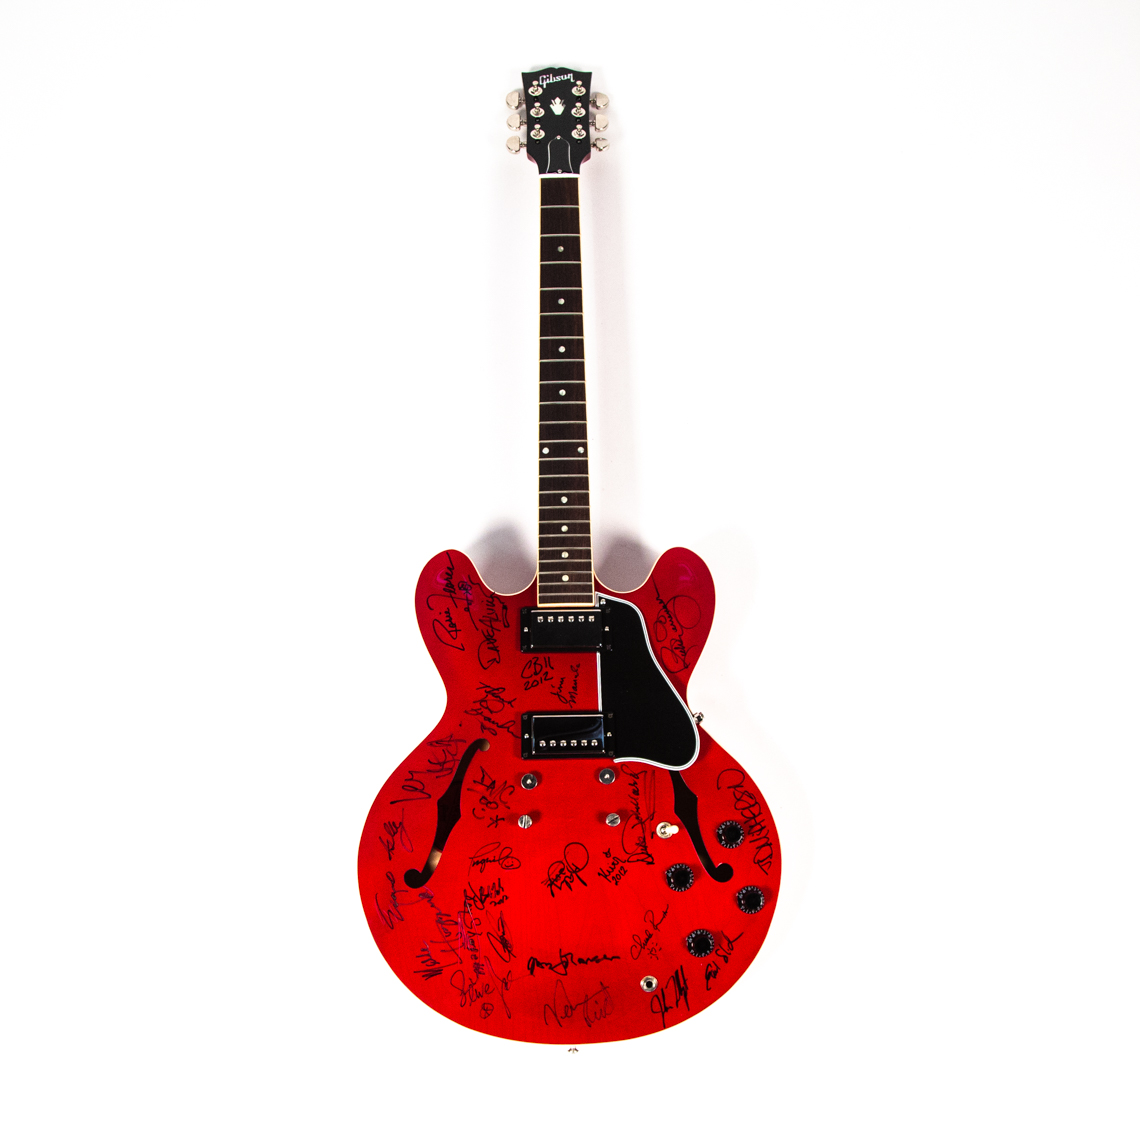 Gibson ES-335 signed by every single performer at Chuck Berry's American Music Masters ceremony